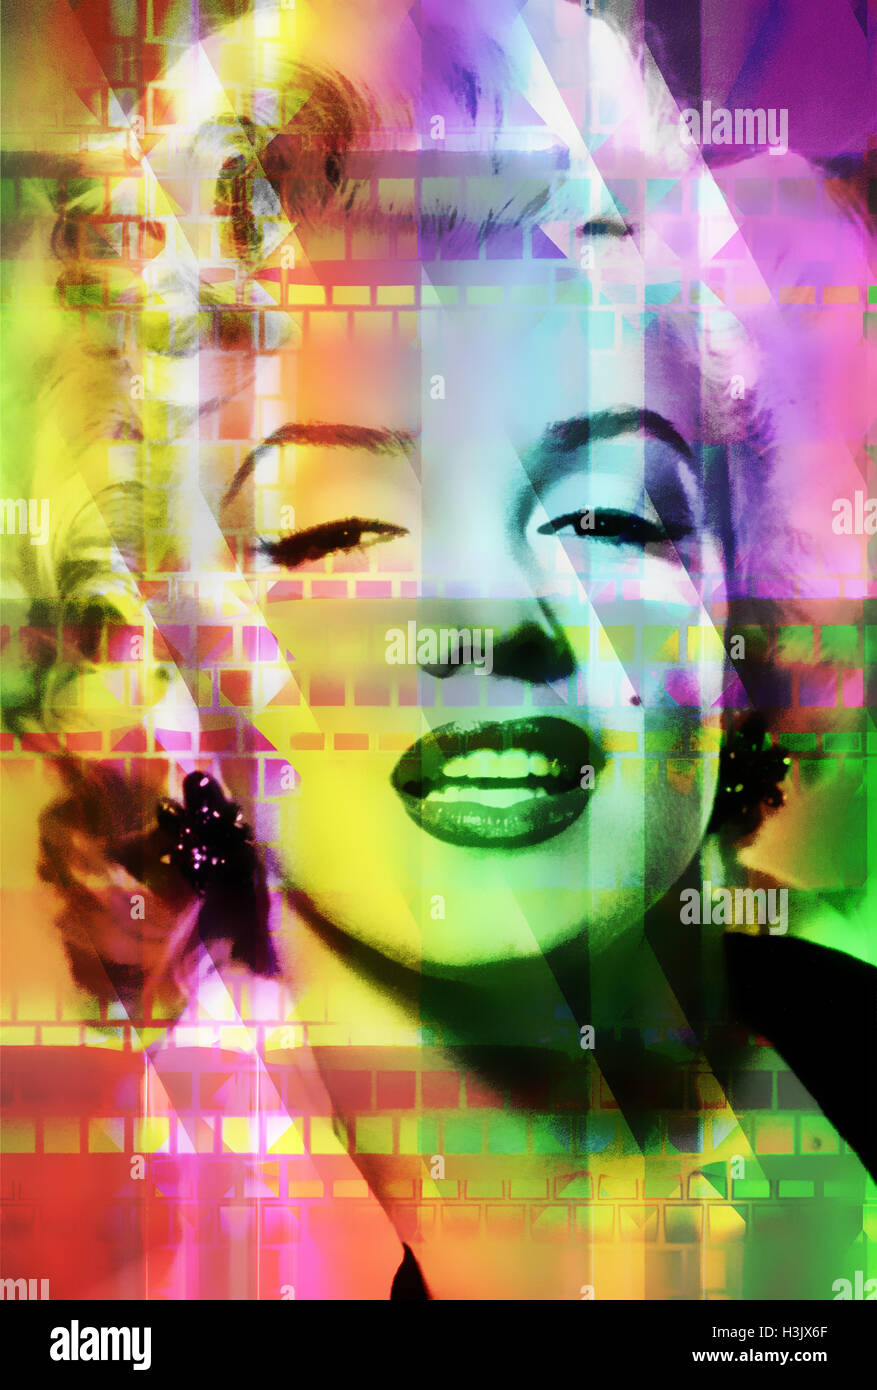 Marilyn Monroe pop art version - Stock Image